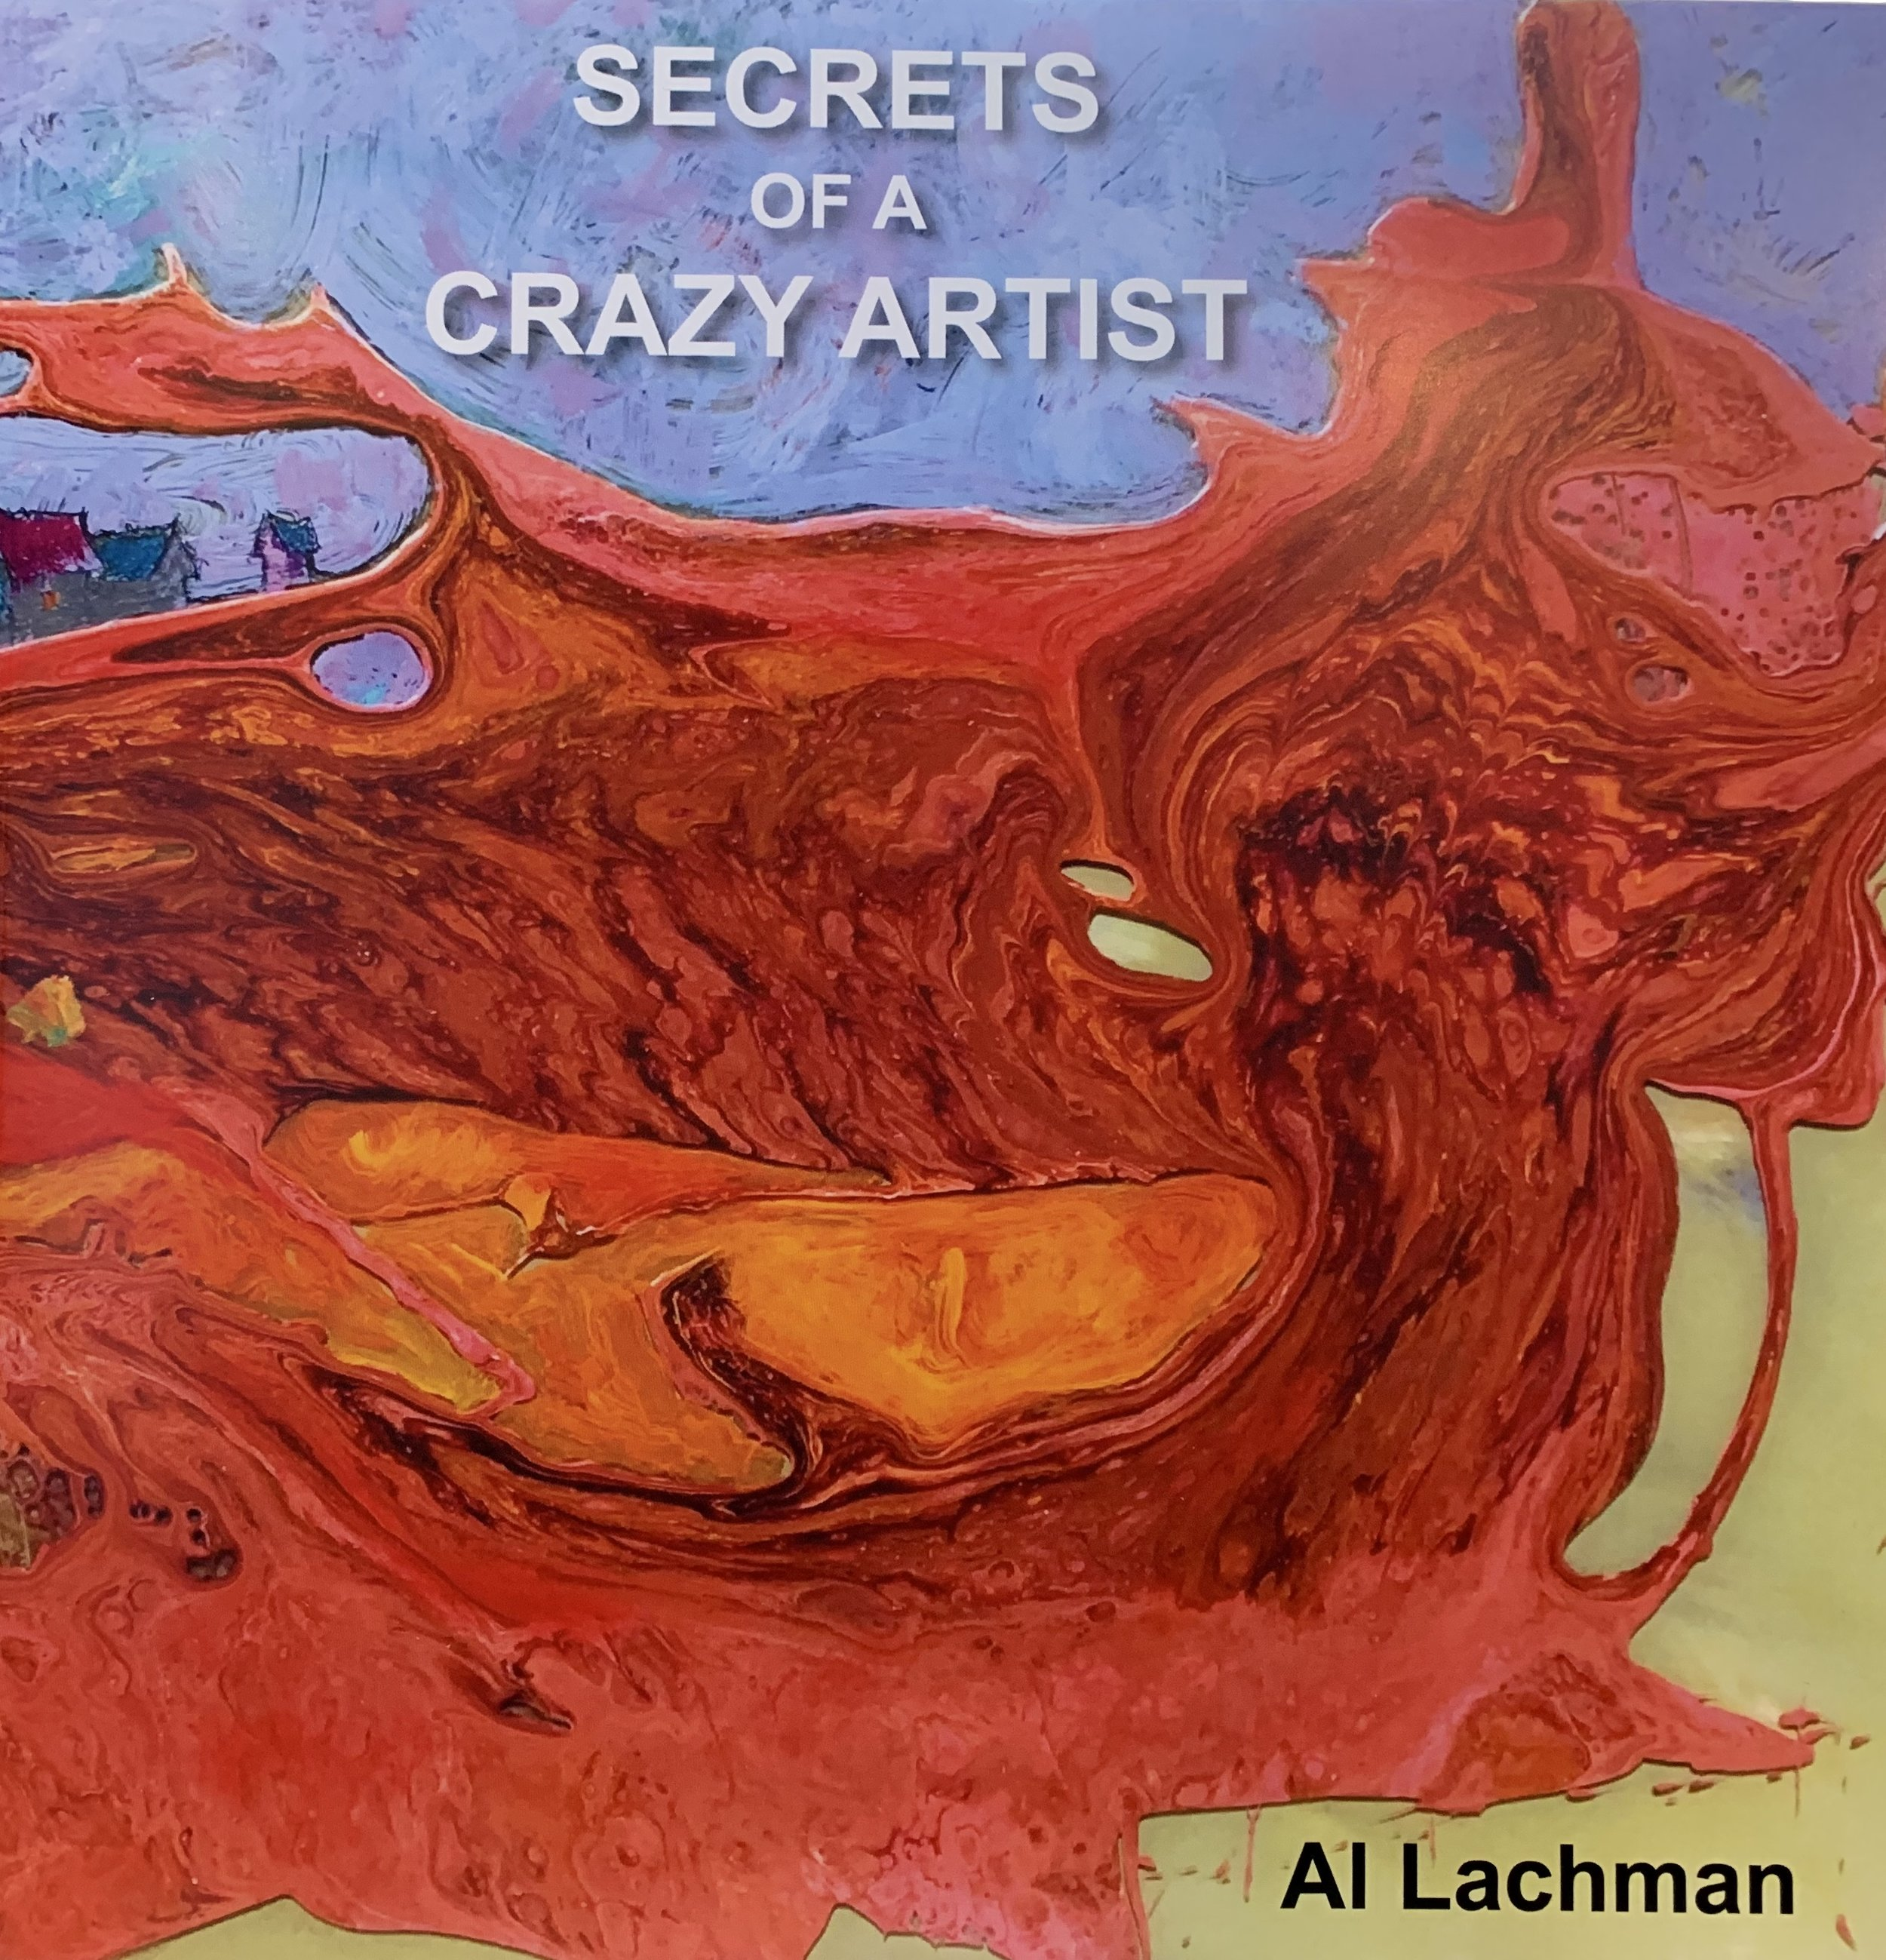 SECRETS OF A CRAZY ARTIST